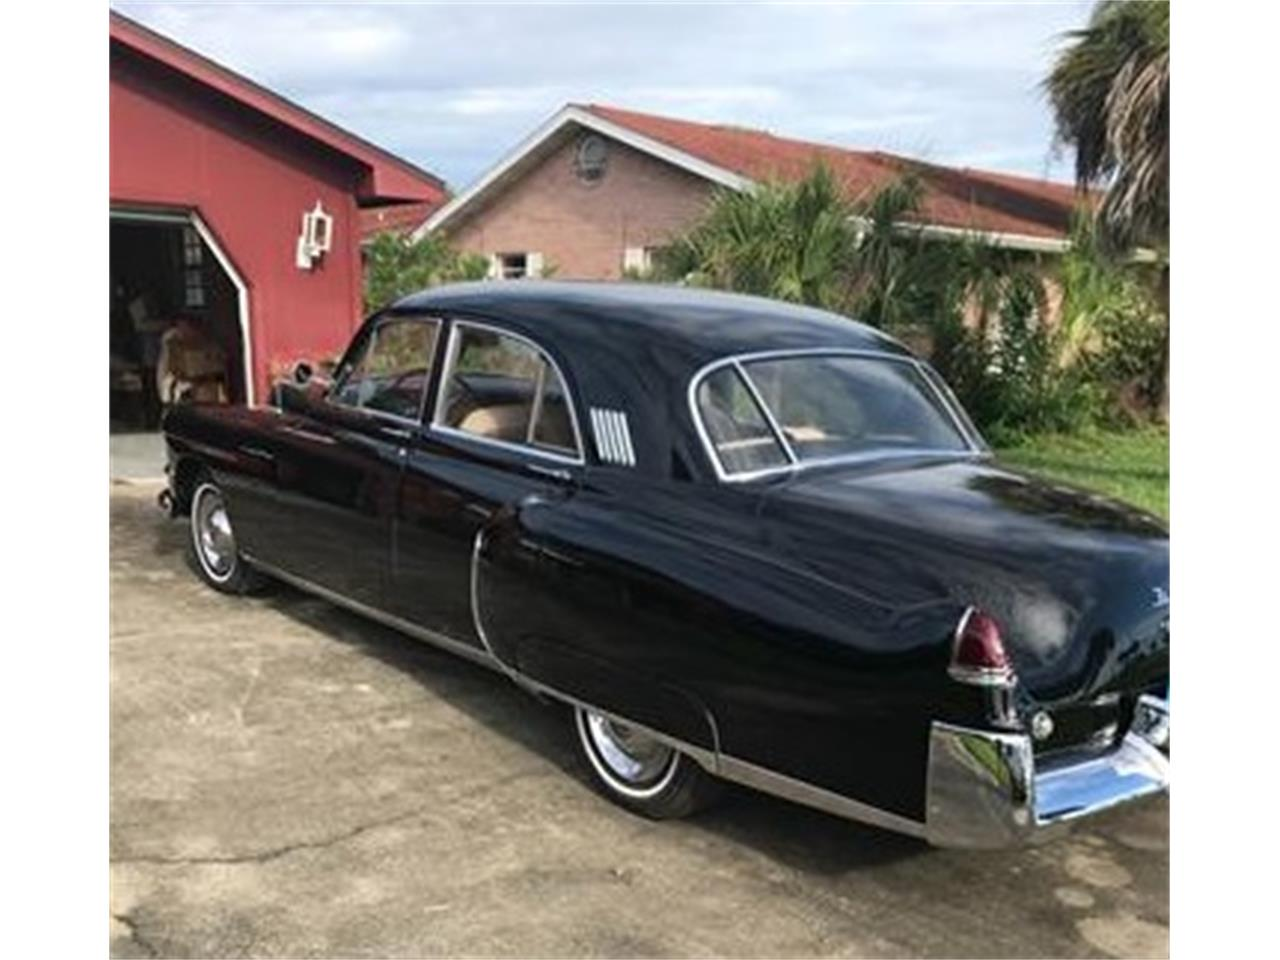 1949 Cadillac 4-Dr Sedan for sale in Land O Lakes, FL